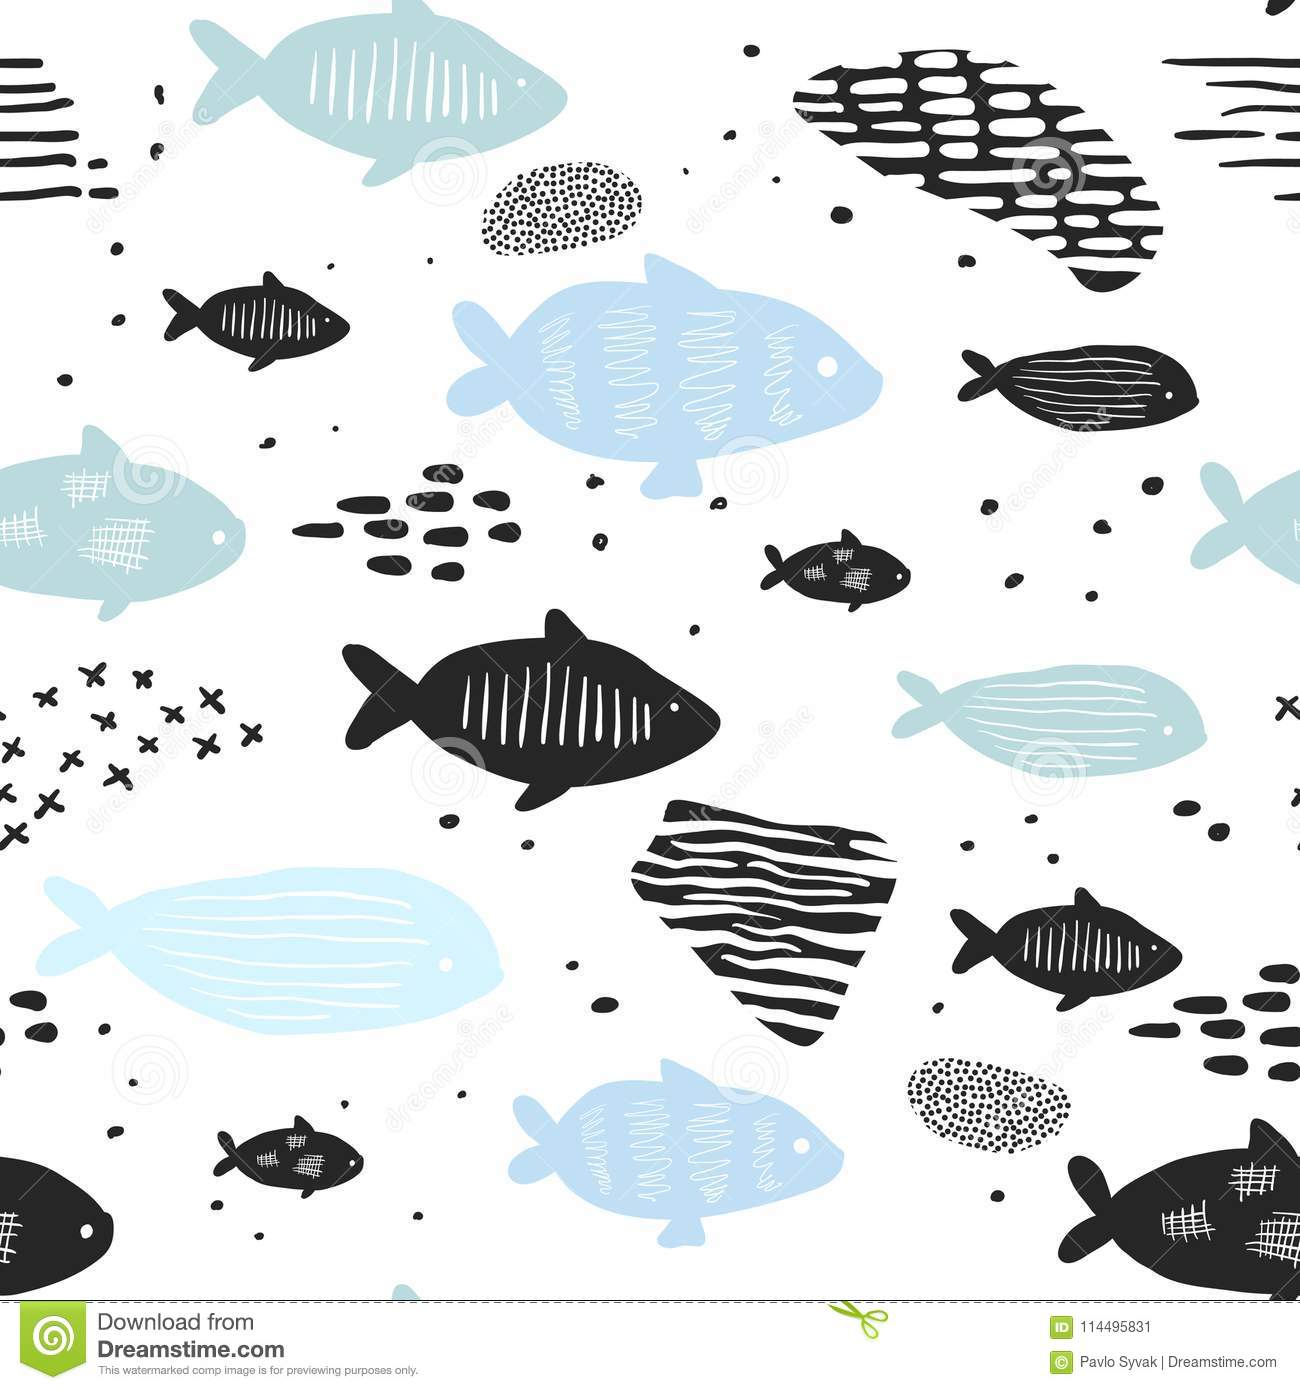 childish nautical seamless patterns with cute fish underwaterchildish nautical seamless patterns with cute fish underwater creatures background for fabric, wallpaper wrapping